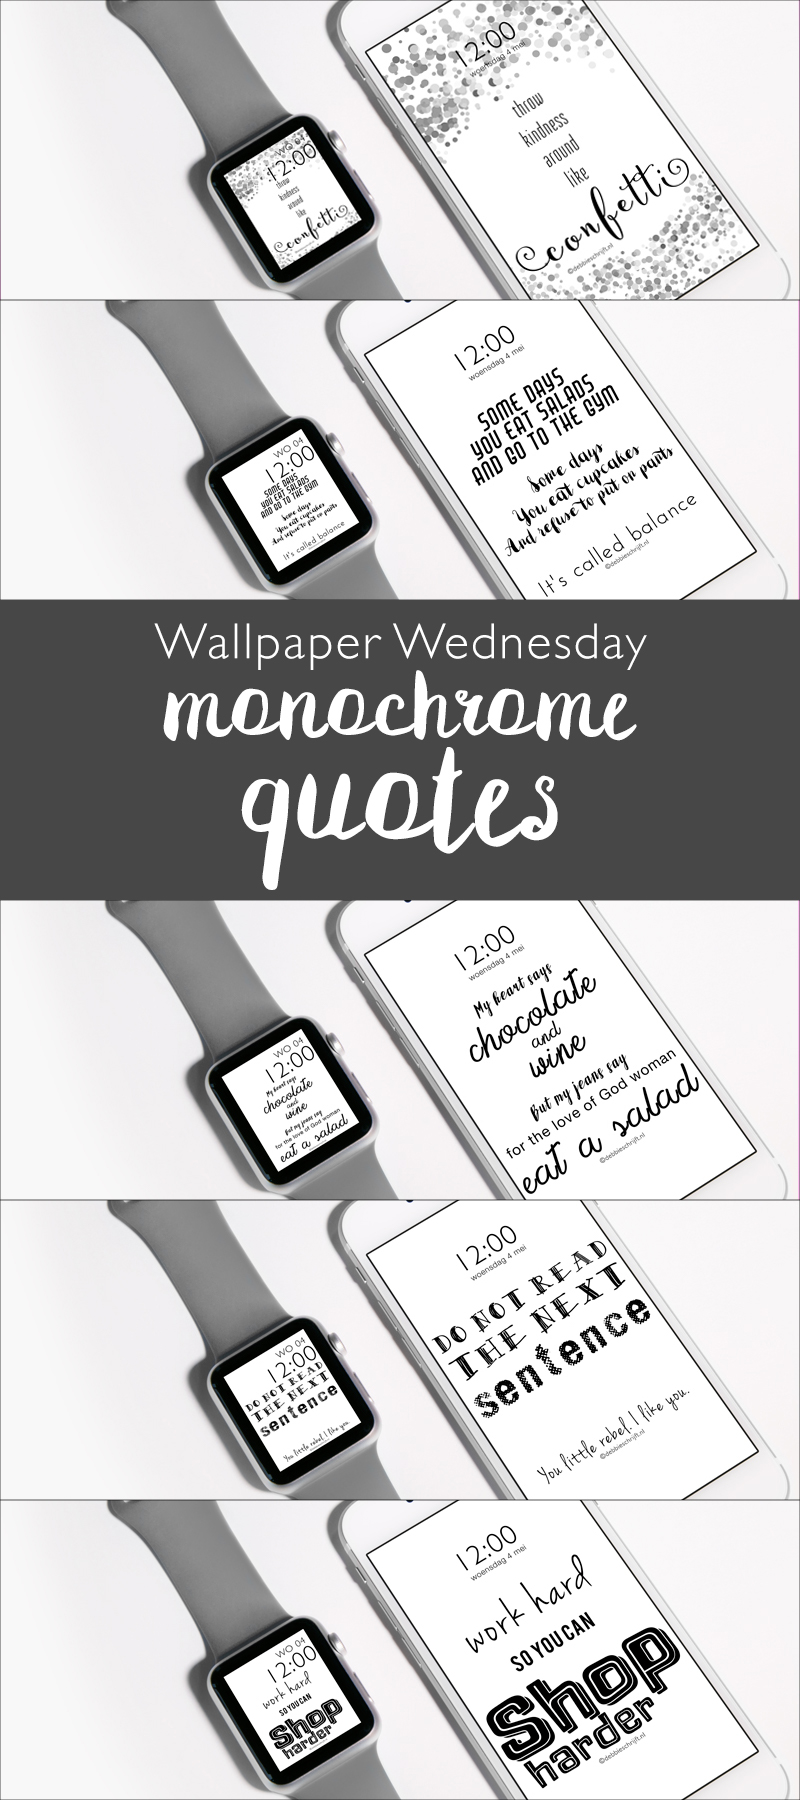 wallpaper wednesday monochrome quotes